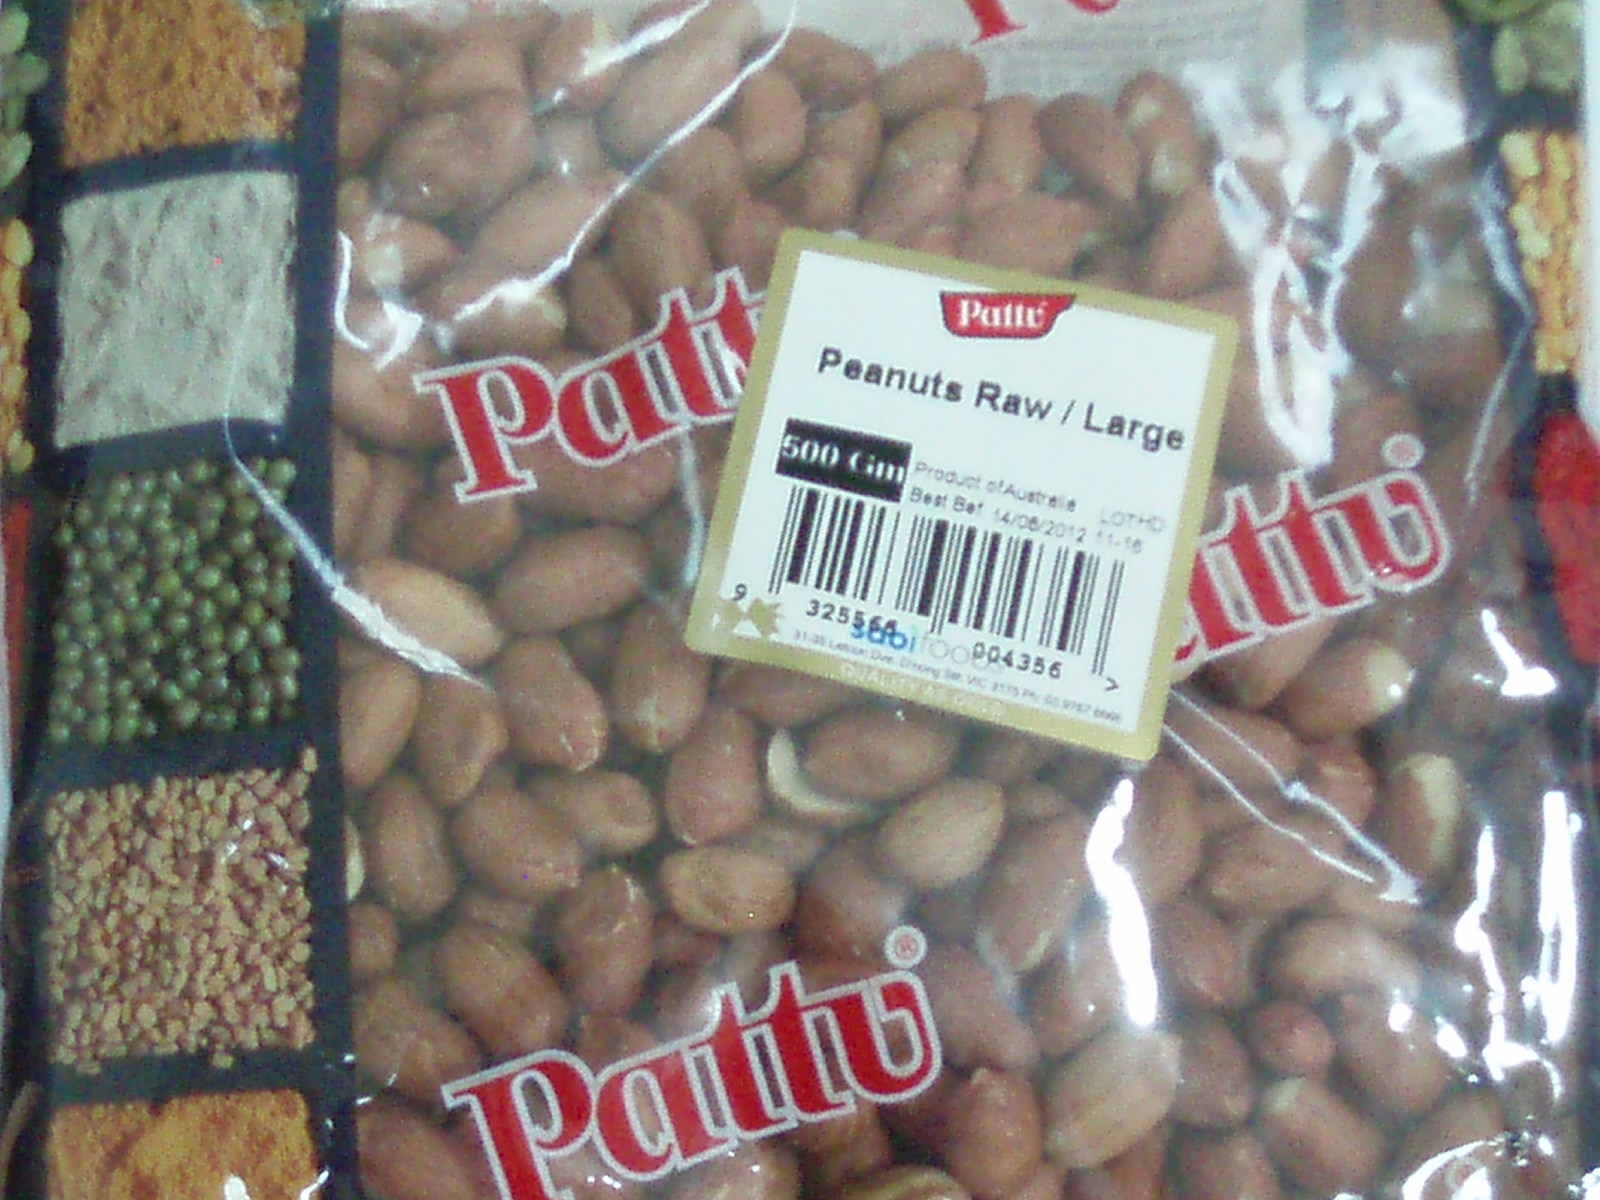 Peanuts Raw Large-Pattu-500 gm